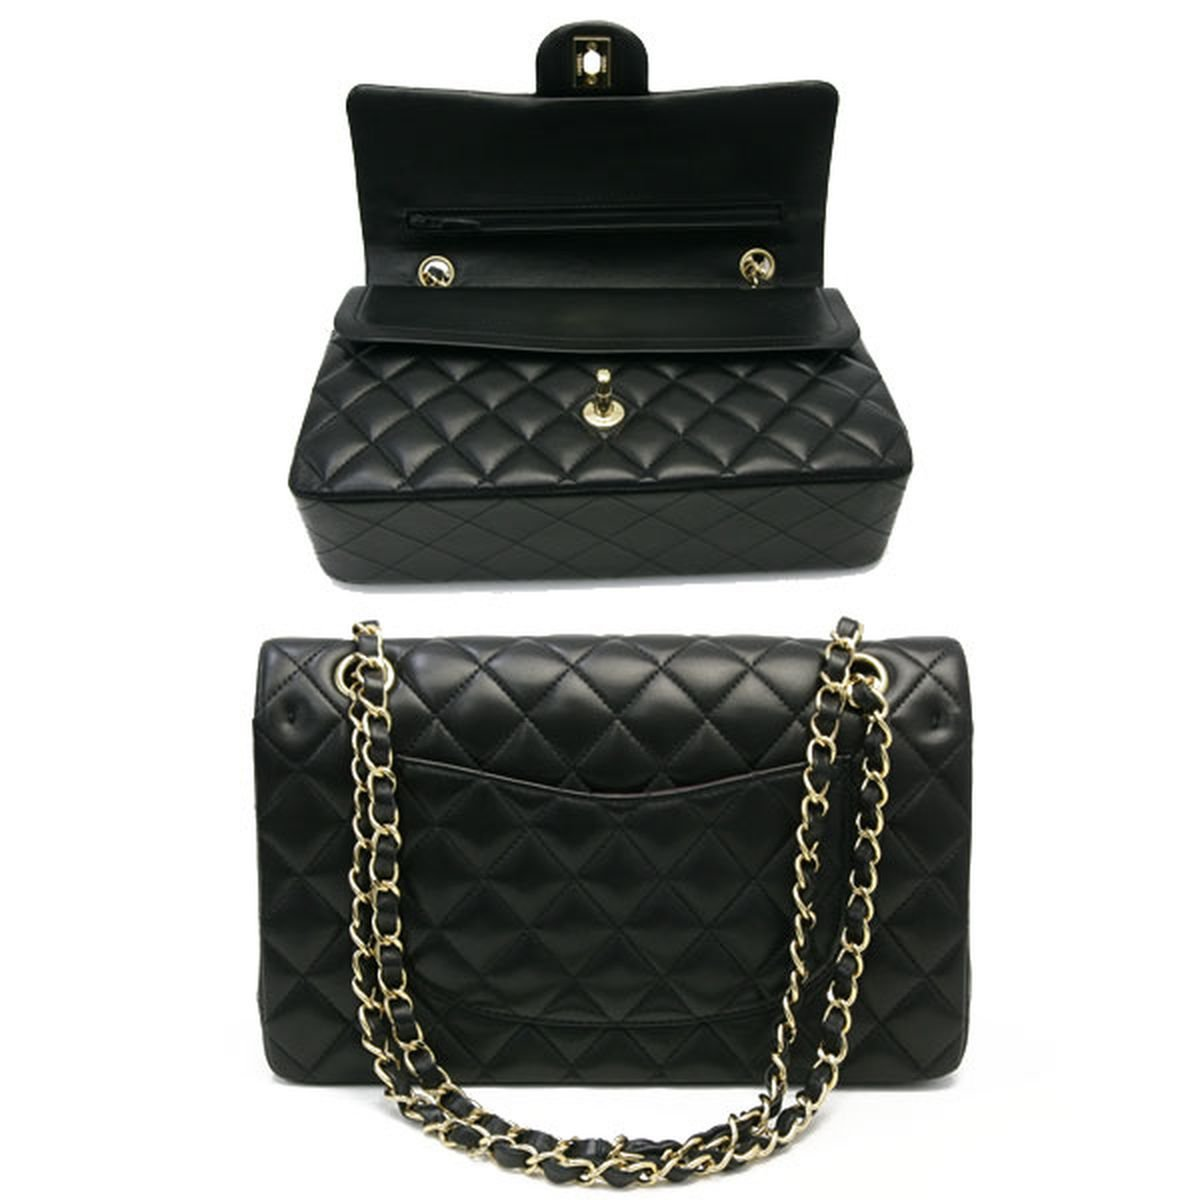 732391999982 Amazon.com: CHANEL Lambskin Classic Flap Bag with Gold Chain: Shoes